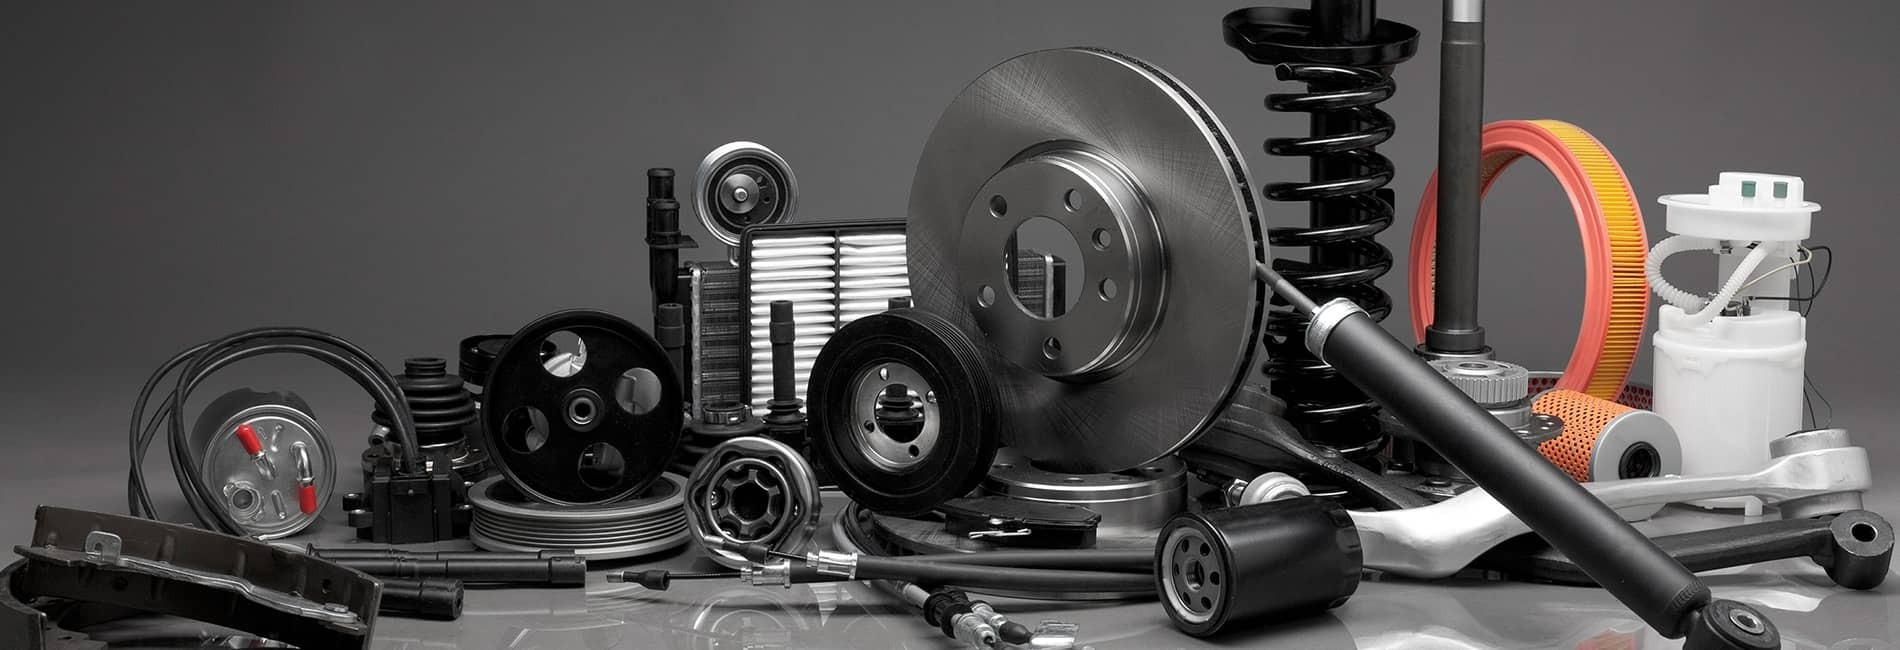 Basic automotive parts for general maintenance and repairs.